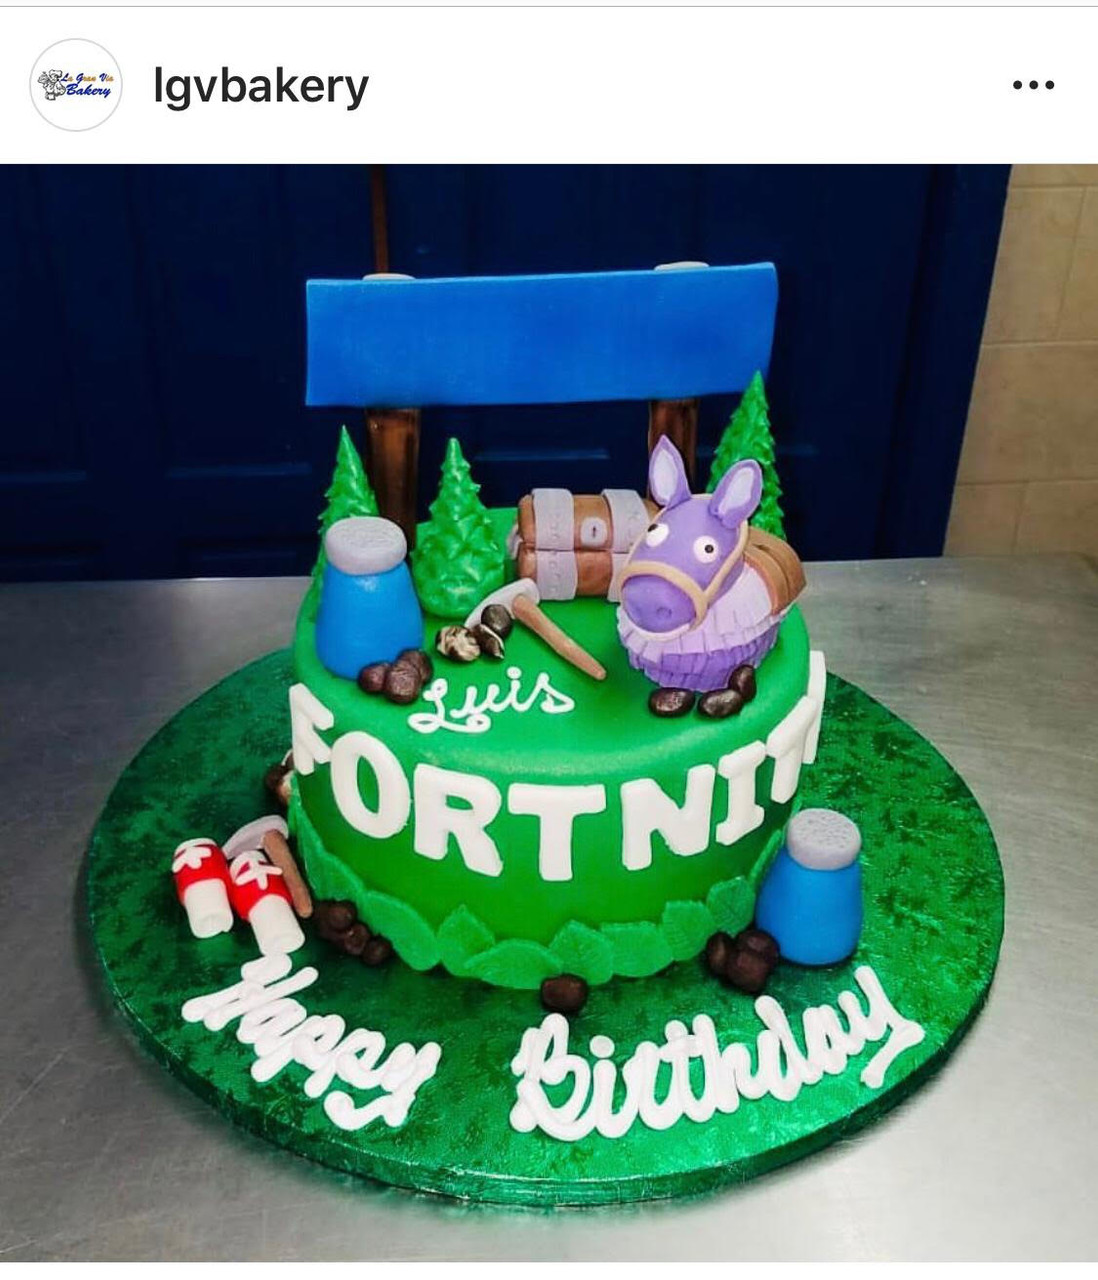 Fortnite Cake Lgv Bakery Find fortnite birthday cakes at these locations and dance in front of them to complete the challenge. fortnite cake lgv bakery